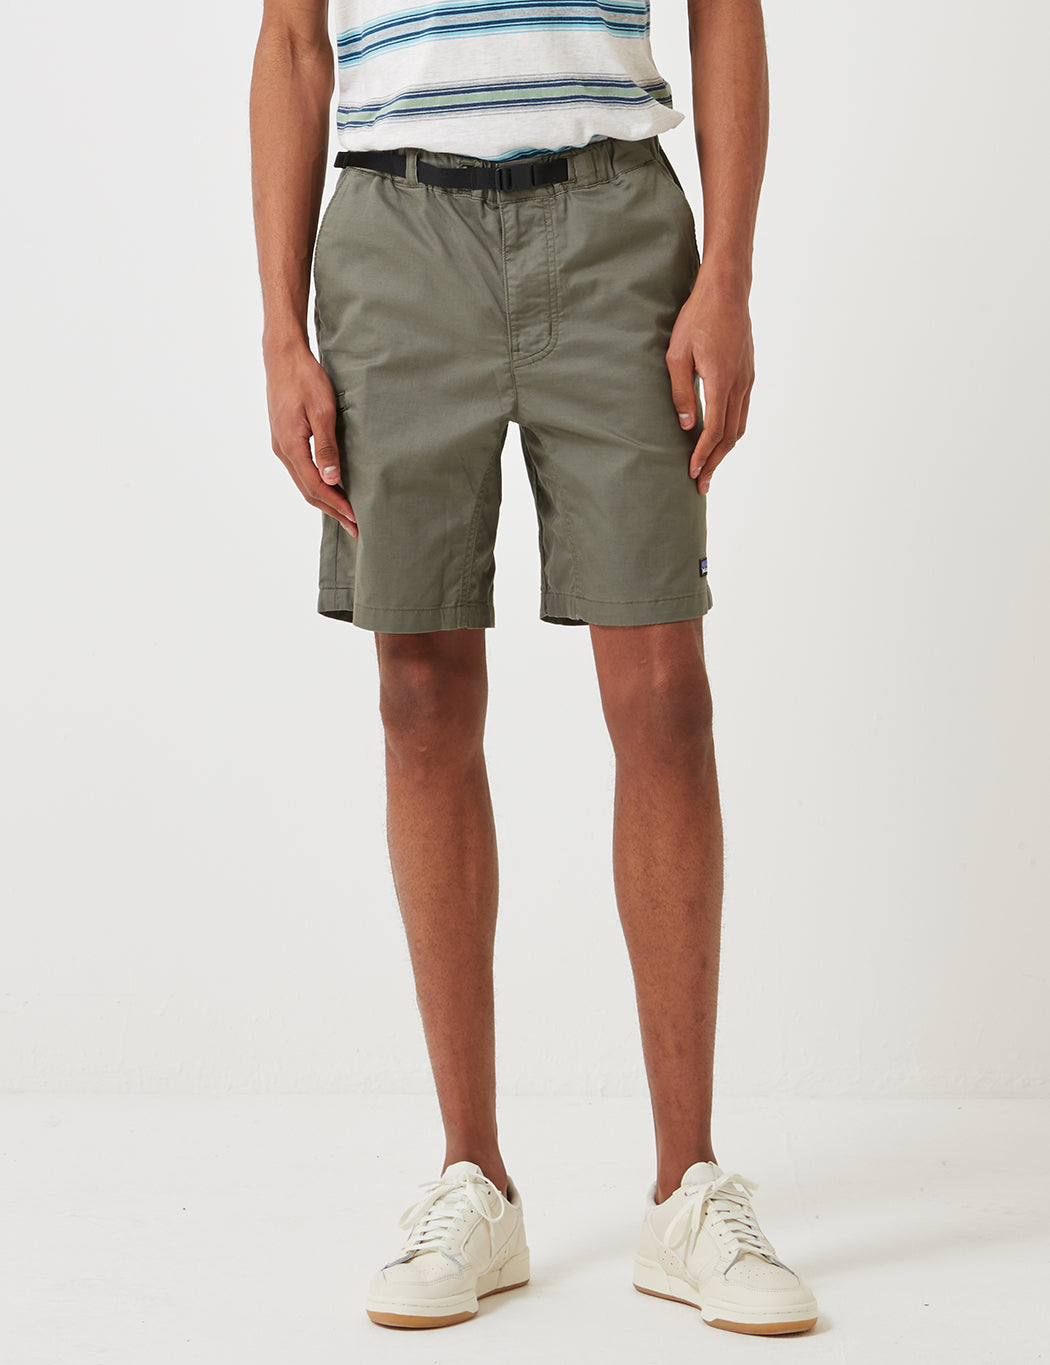 Patagonia Performance Gi IV Shorts (8 in) - Industrial Green | URBANEXCESS.